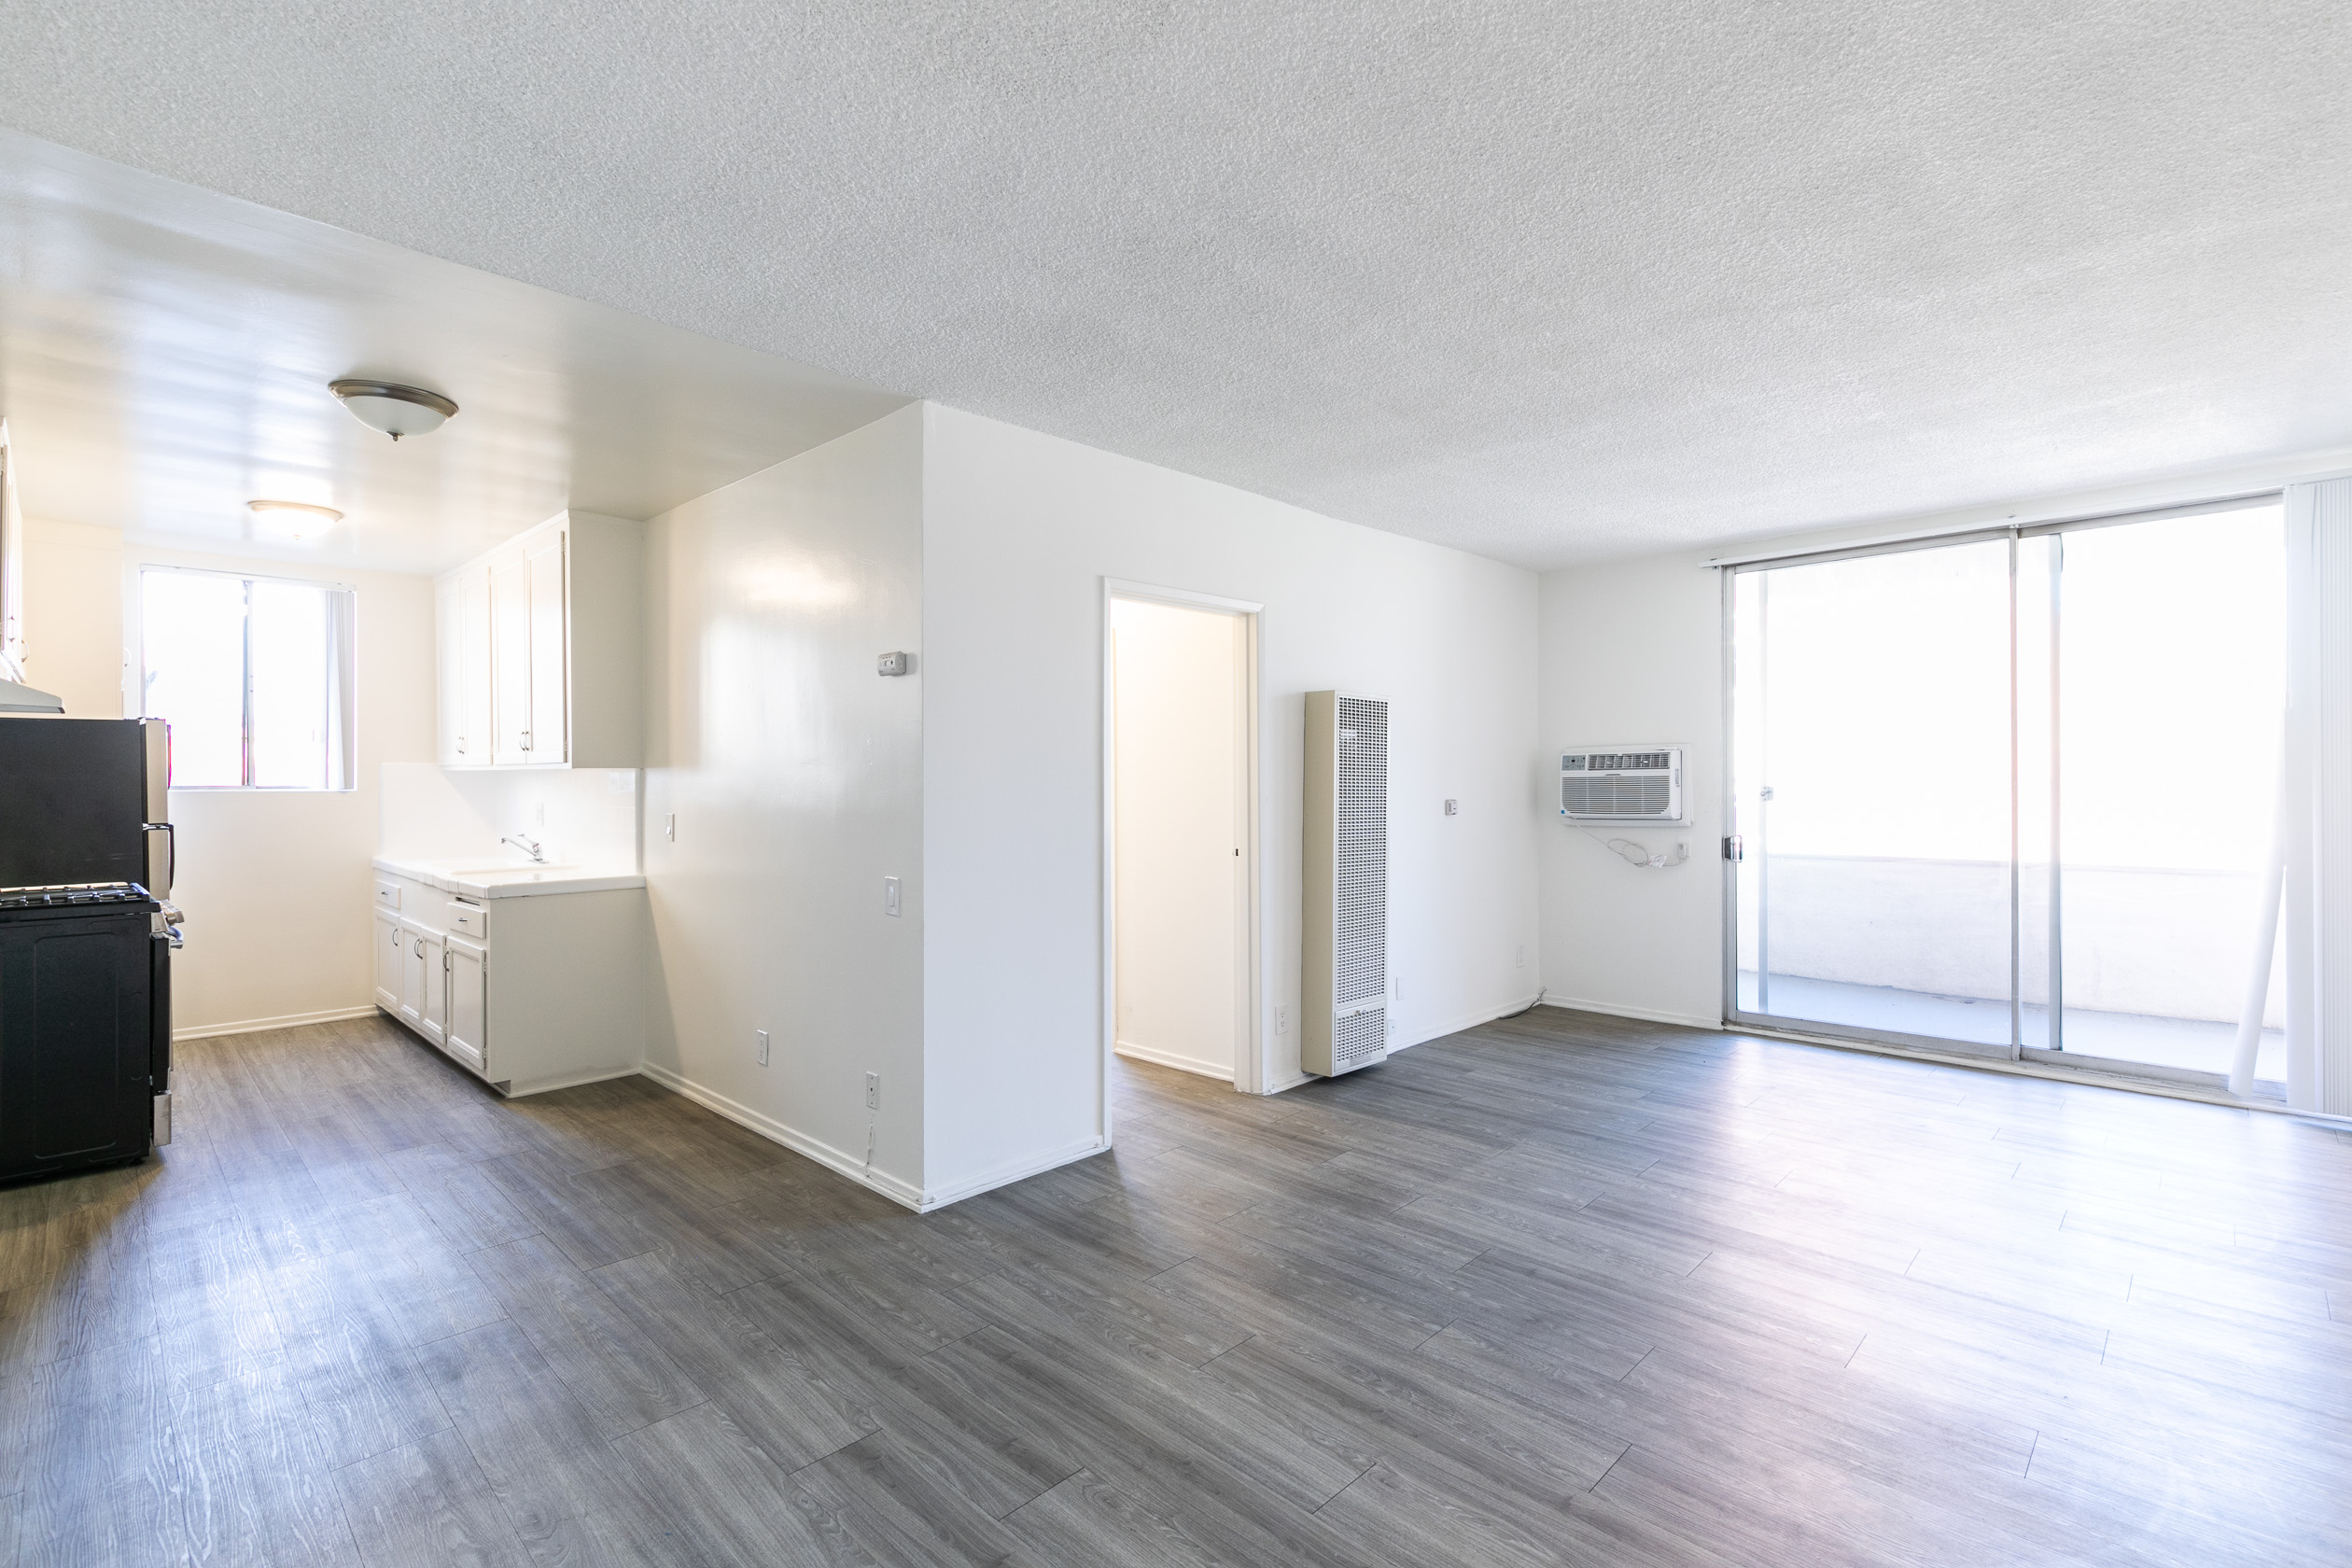 Newly Updated Mid-Century 1 Bed/1 Bath - Beautiful New Flooring - Private Balcony -Parking- Pool - Perfect K-Town Location!